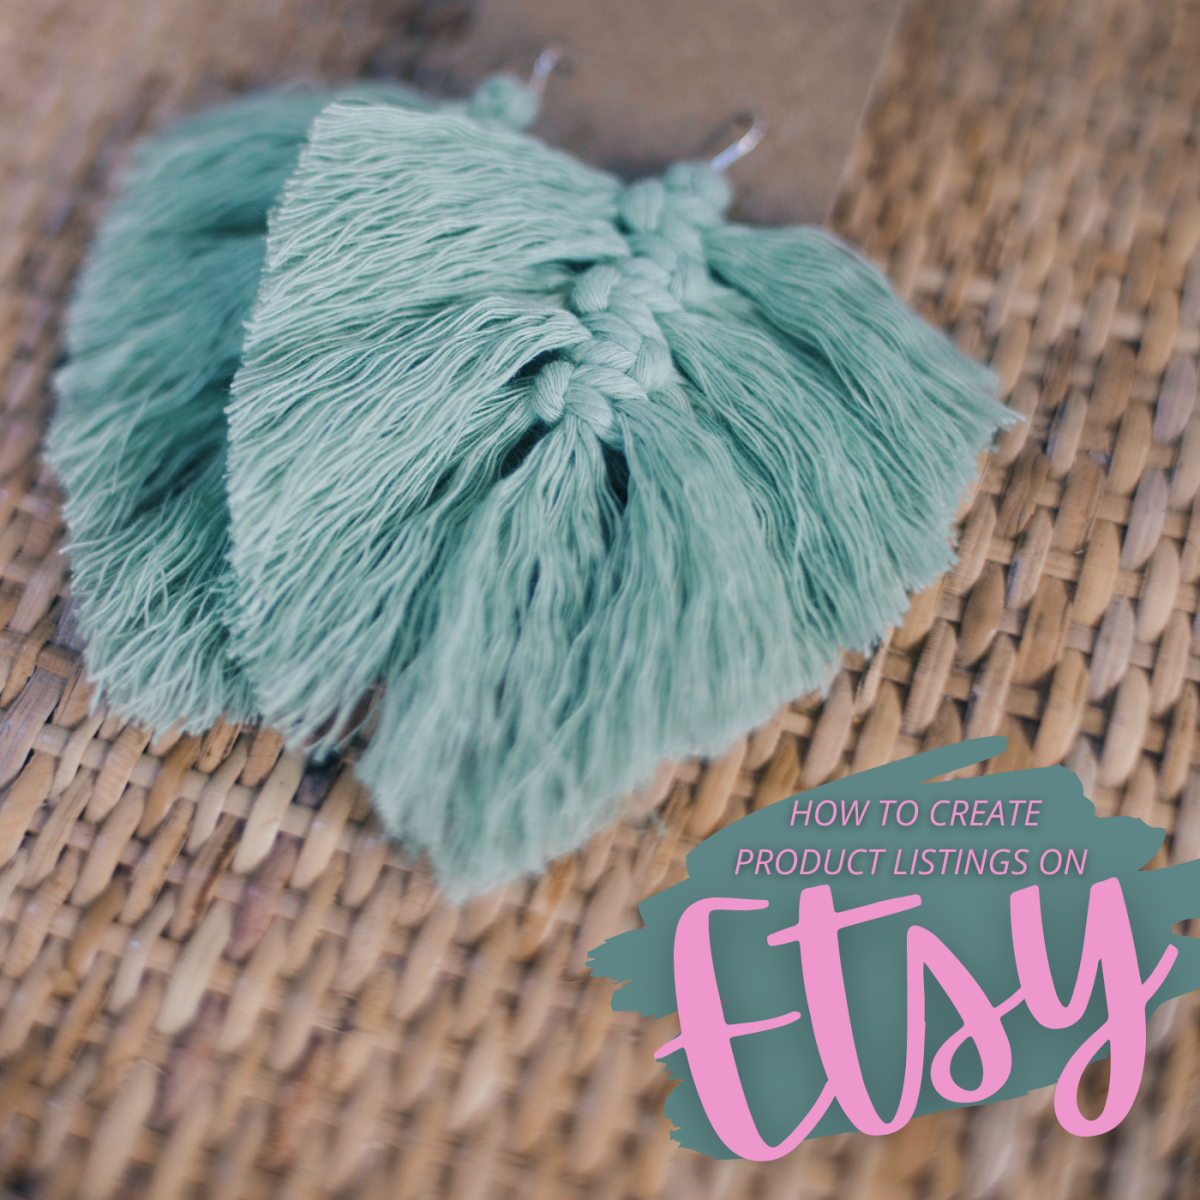 Learn how to make your Etsy products sell by creating effective listings.